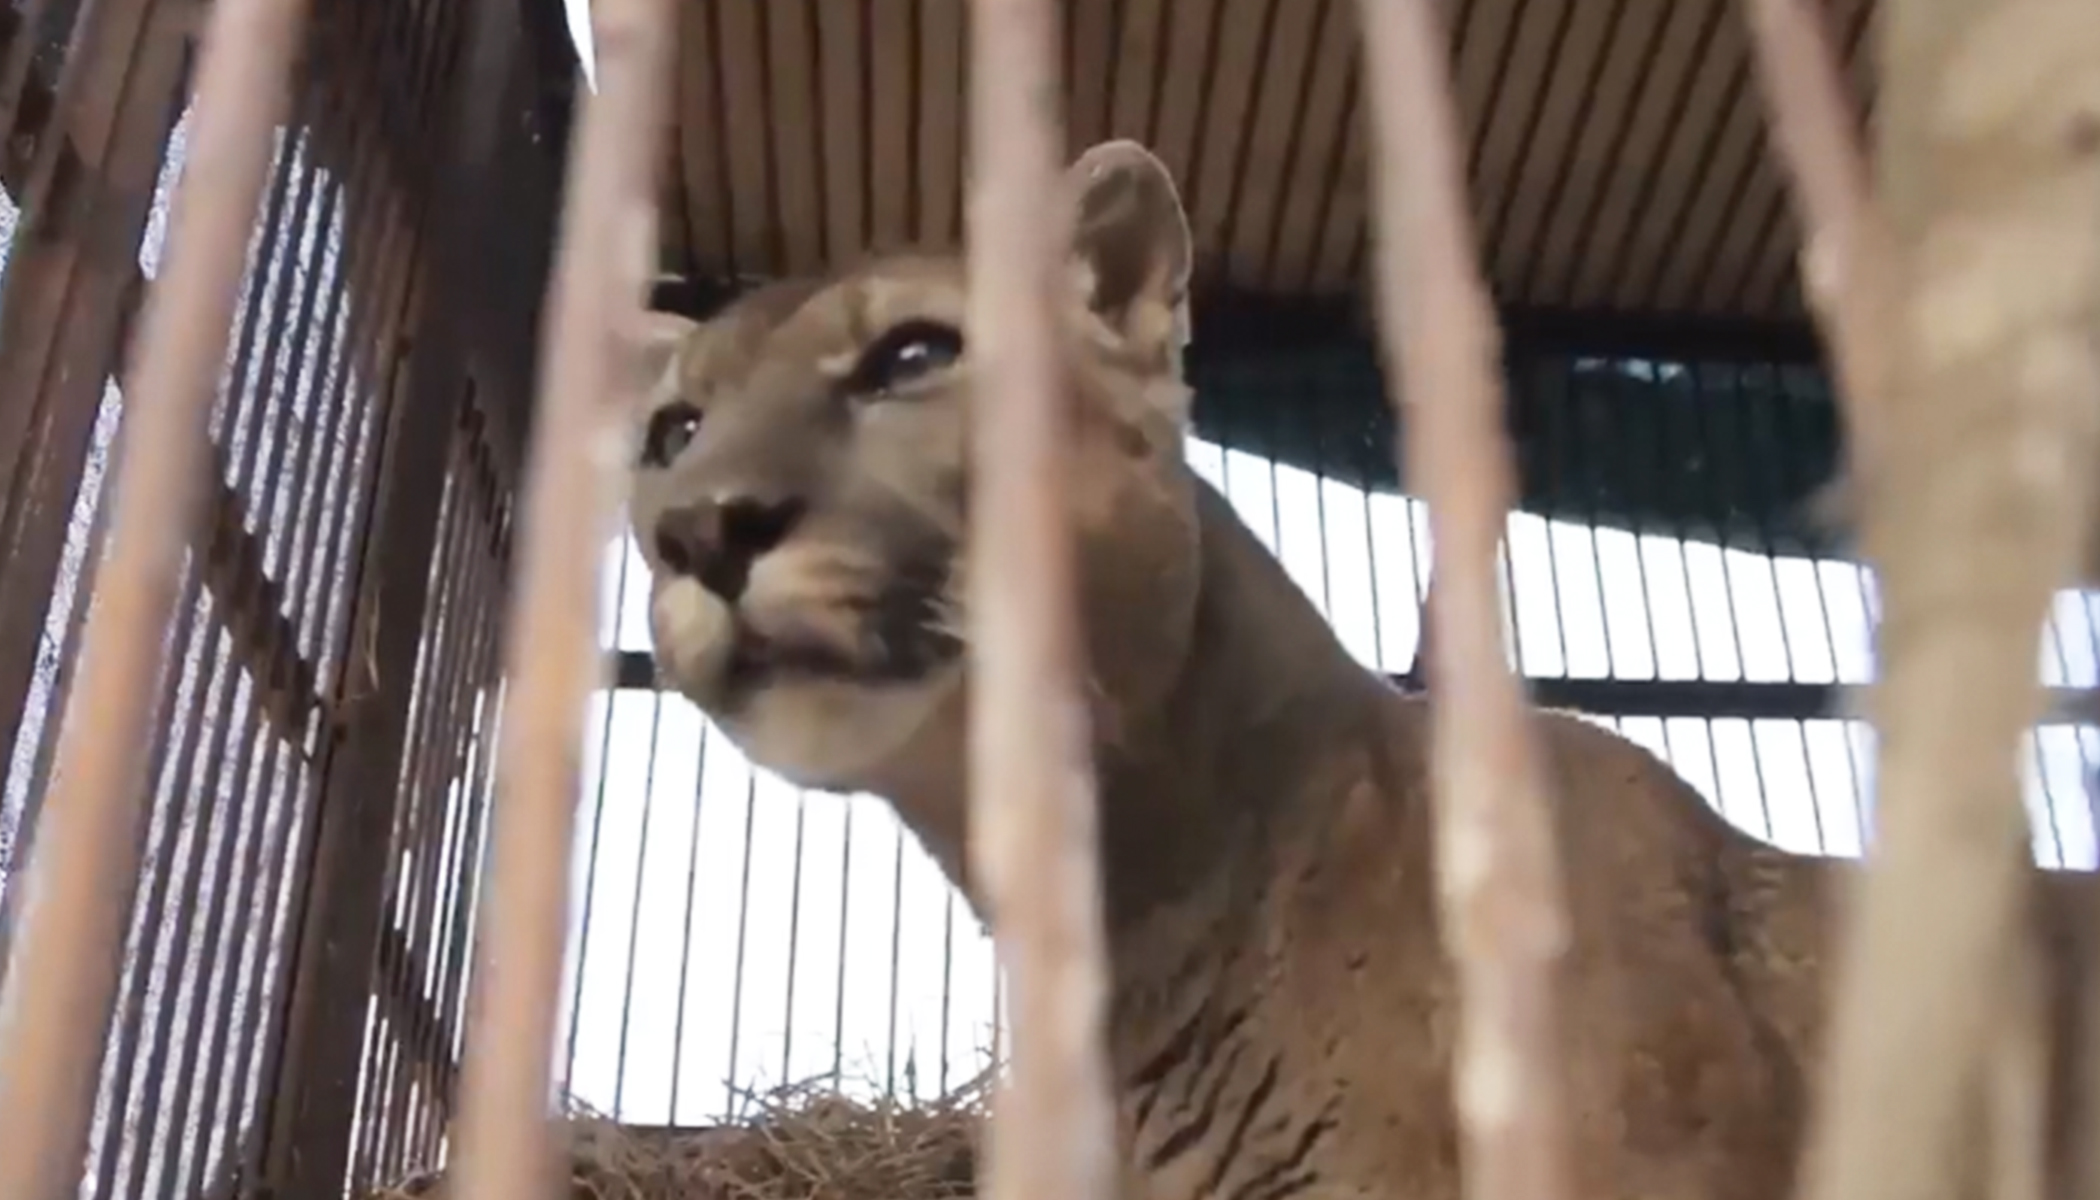 Lion Chained to Rusty Truck for 20 Years, Watch the Moment He Finally Walks Free